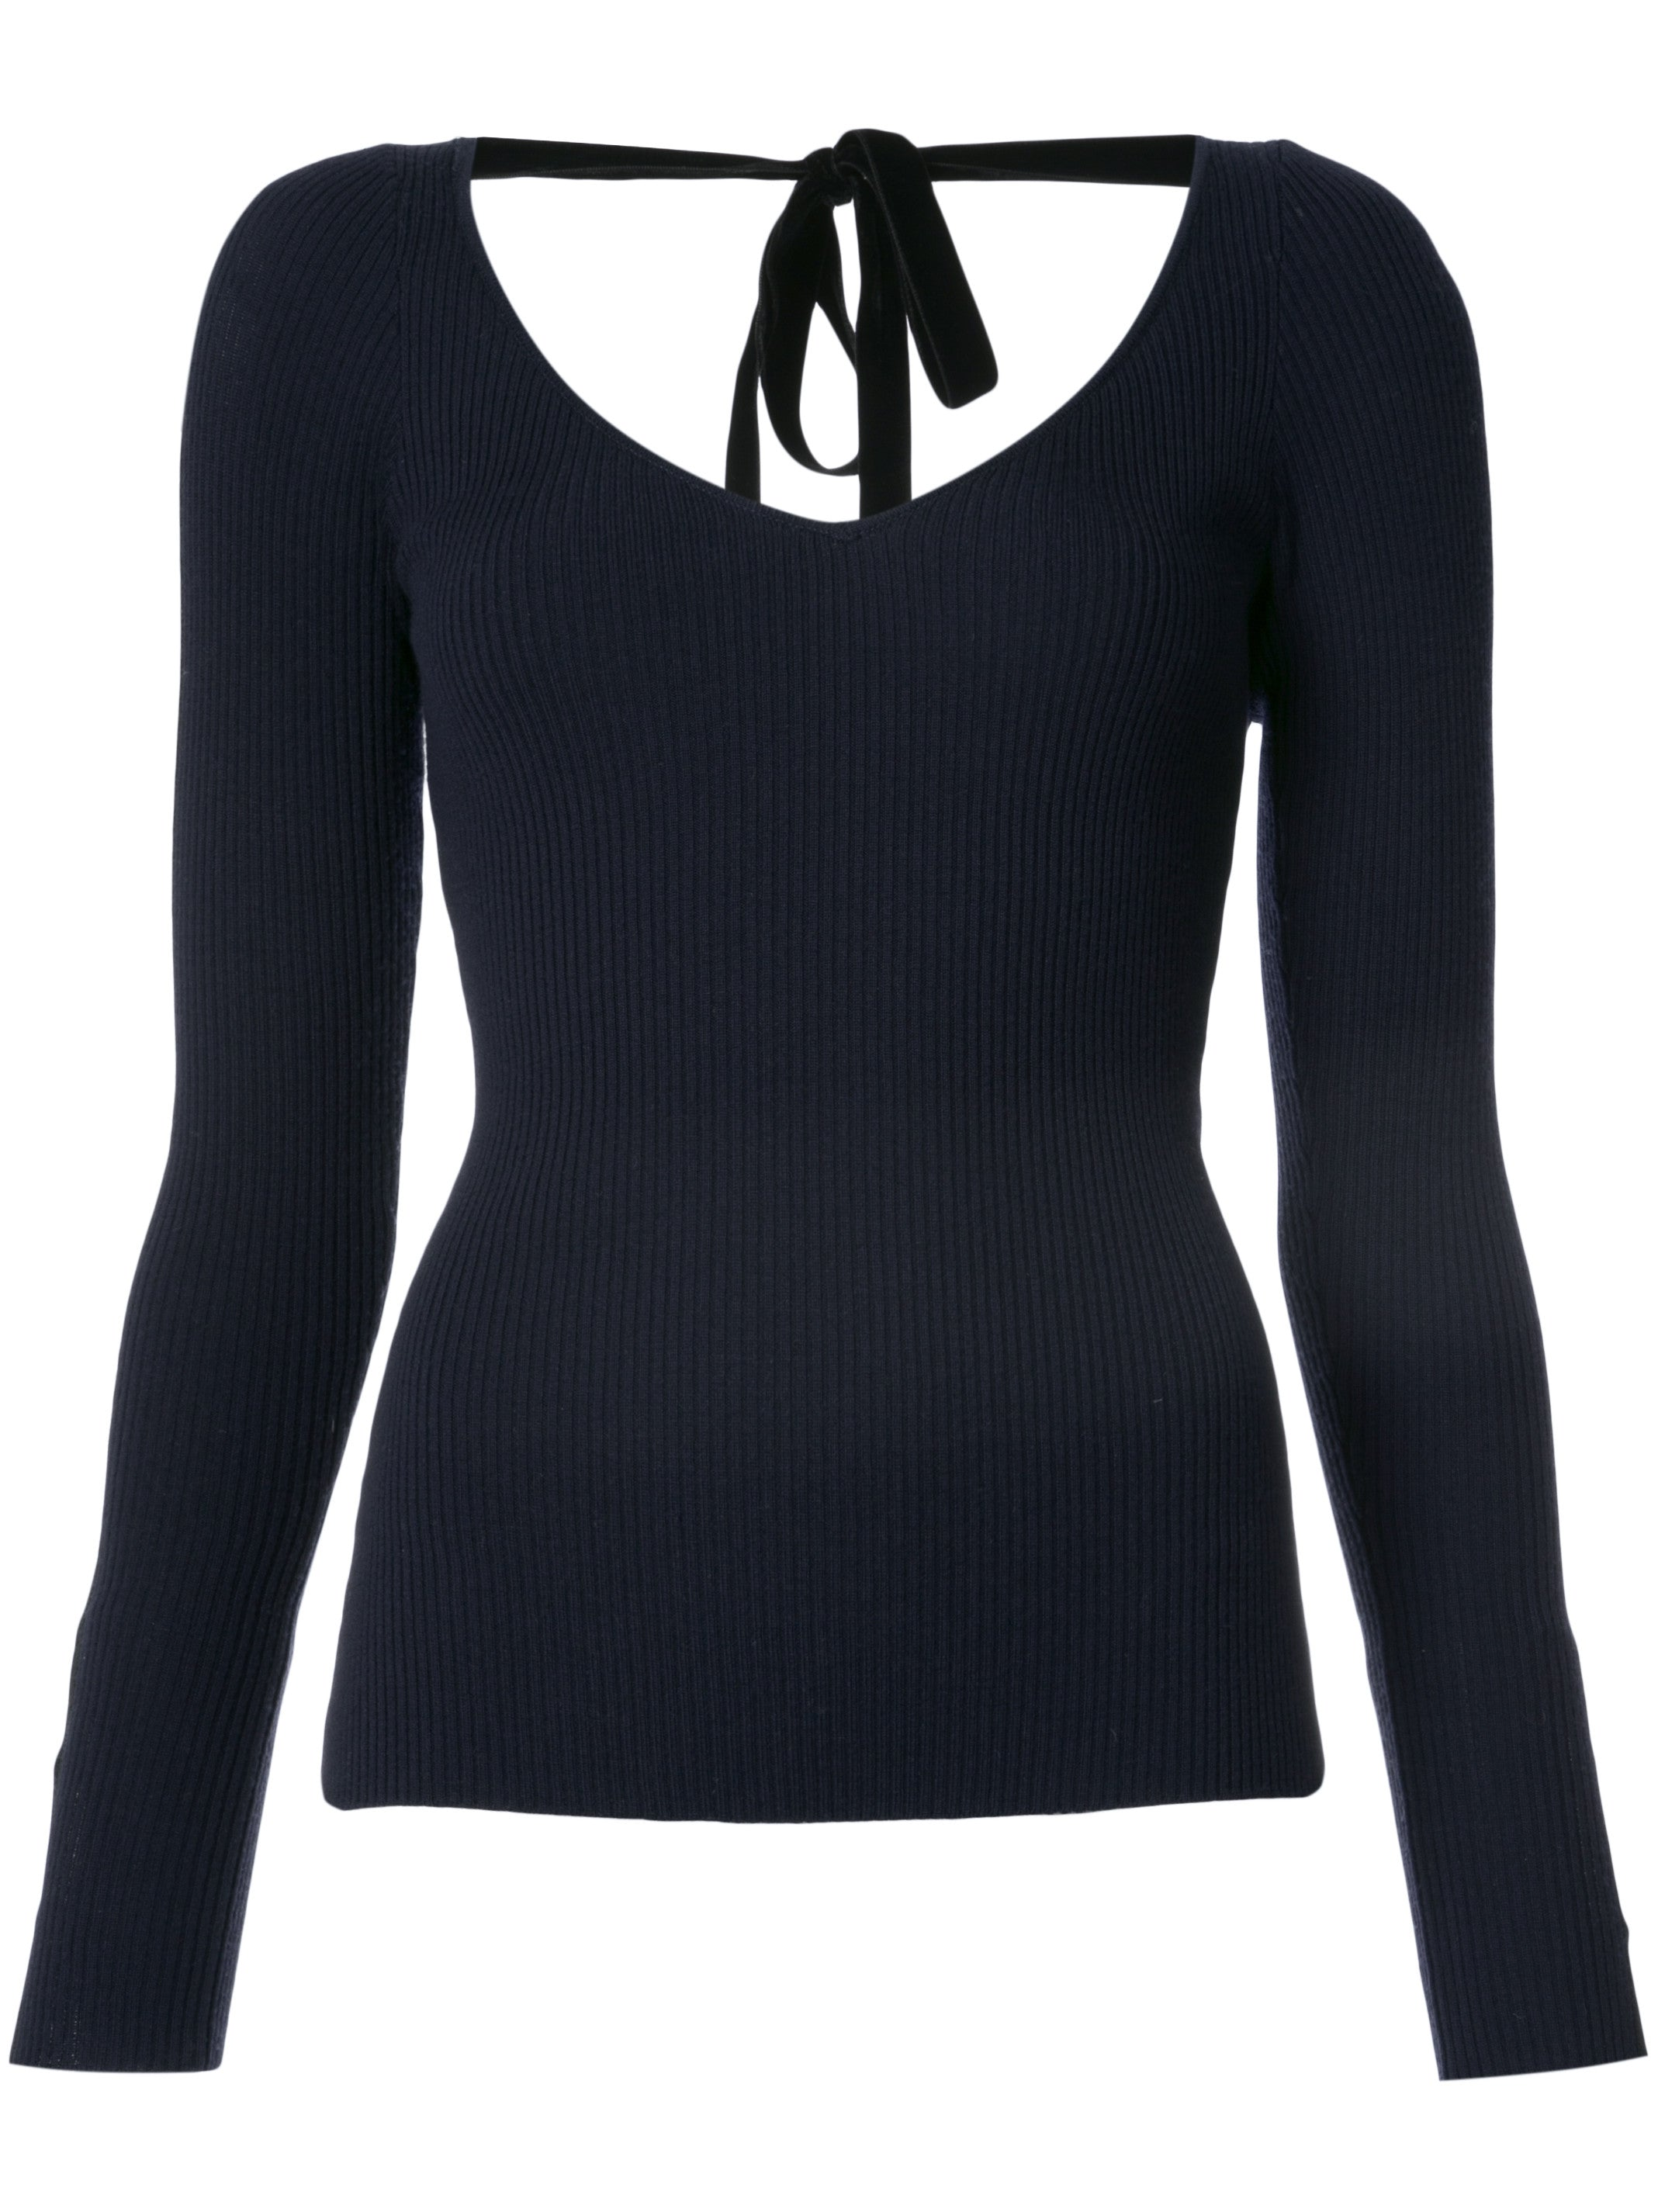 Light Weight Merino Wool Ribbed V-Neck Sweater with Ribbon Detail